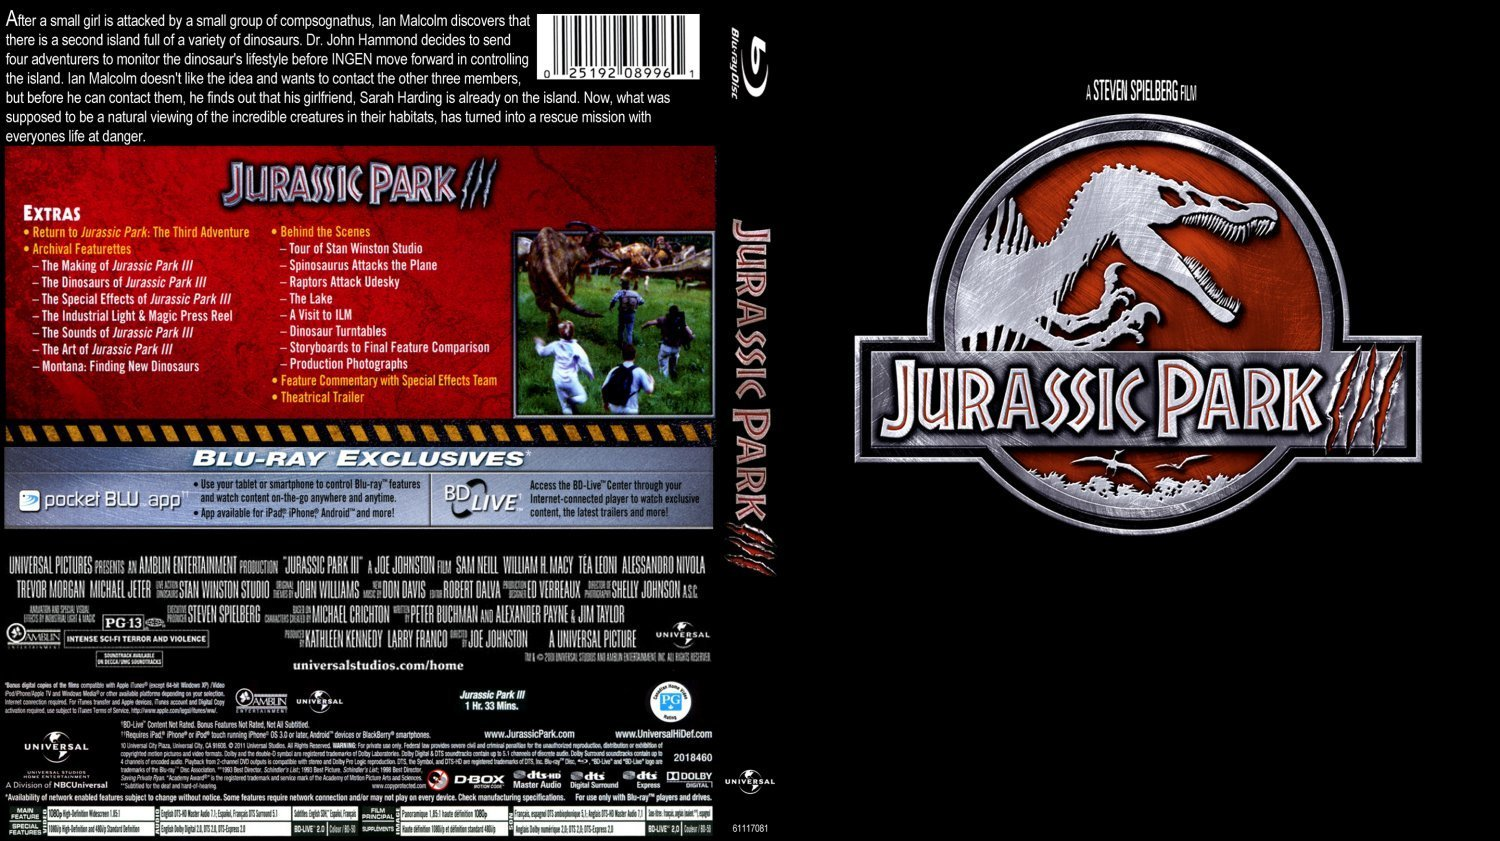 Jurassic Park III | Dvd Covers and Labels